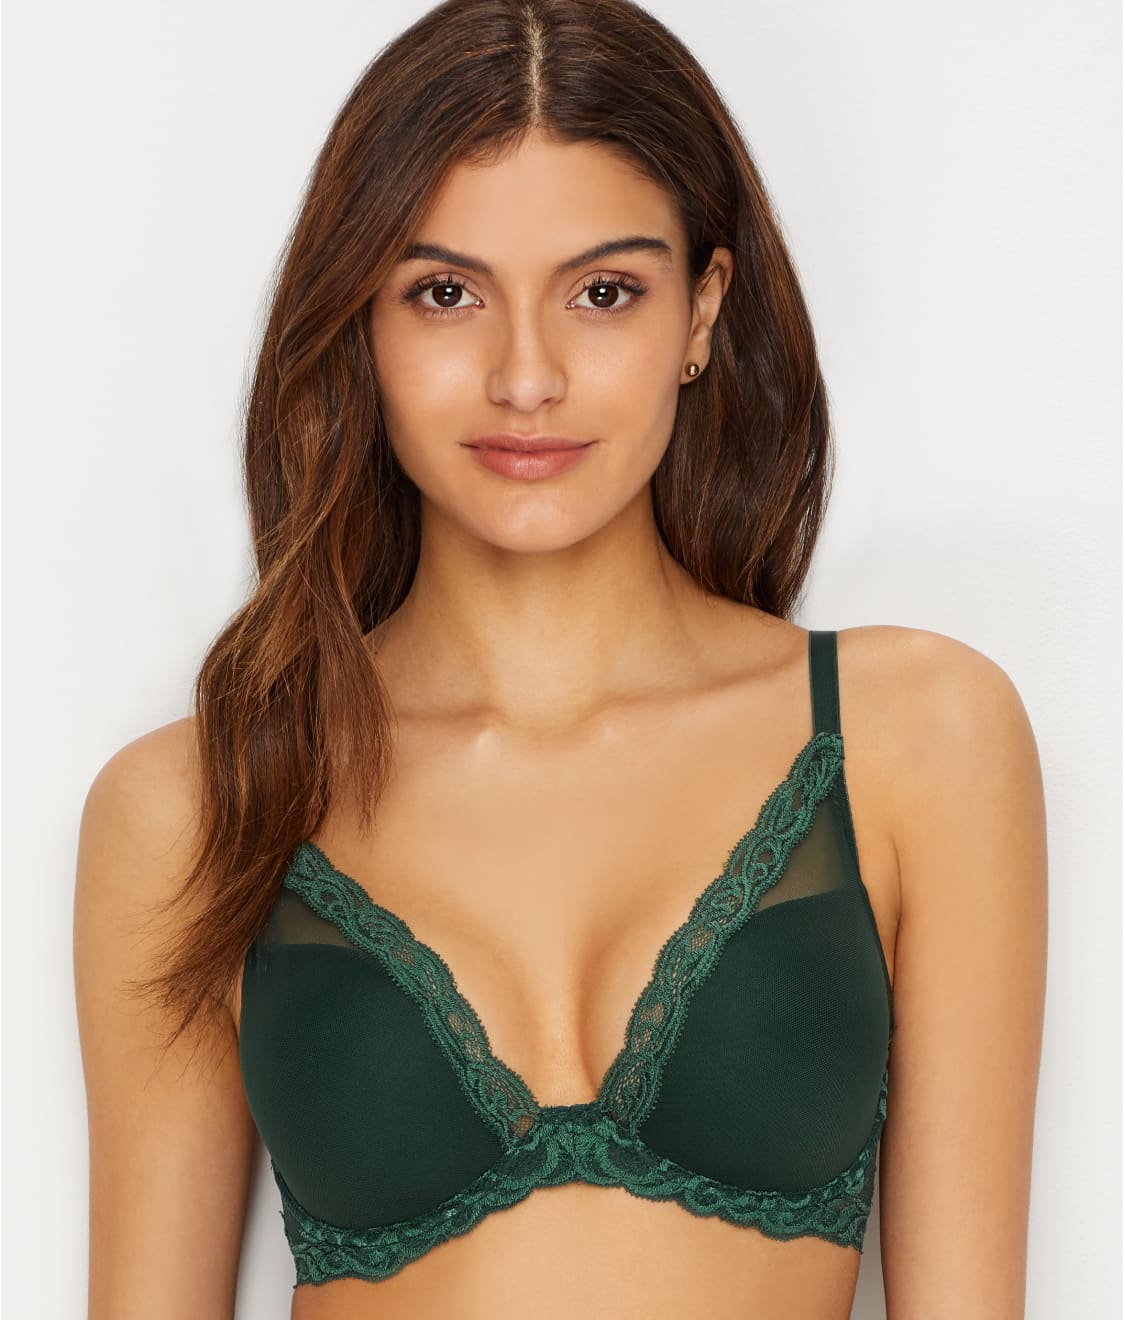 698358c9166f7 See Feathers Plunge Bra in Hunter Green